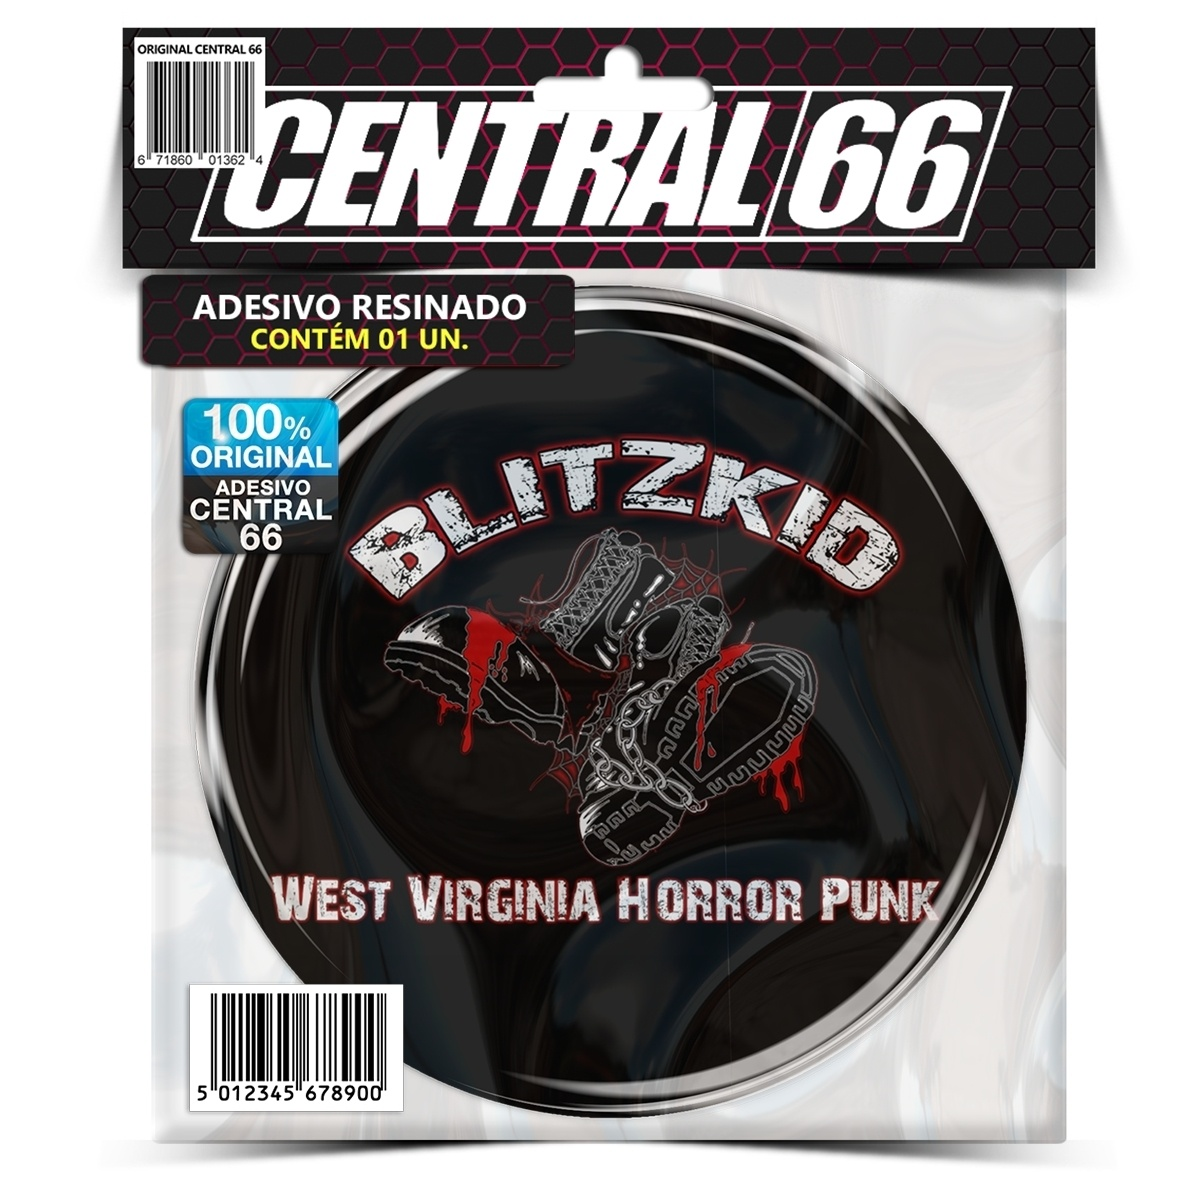 Adesivo Redondo Blitzkid Virginia Horror Punk – Central 66